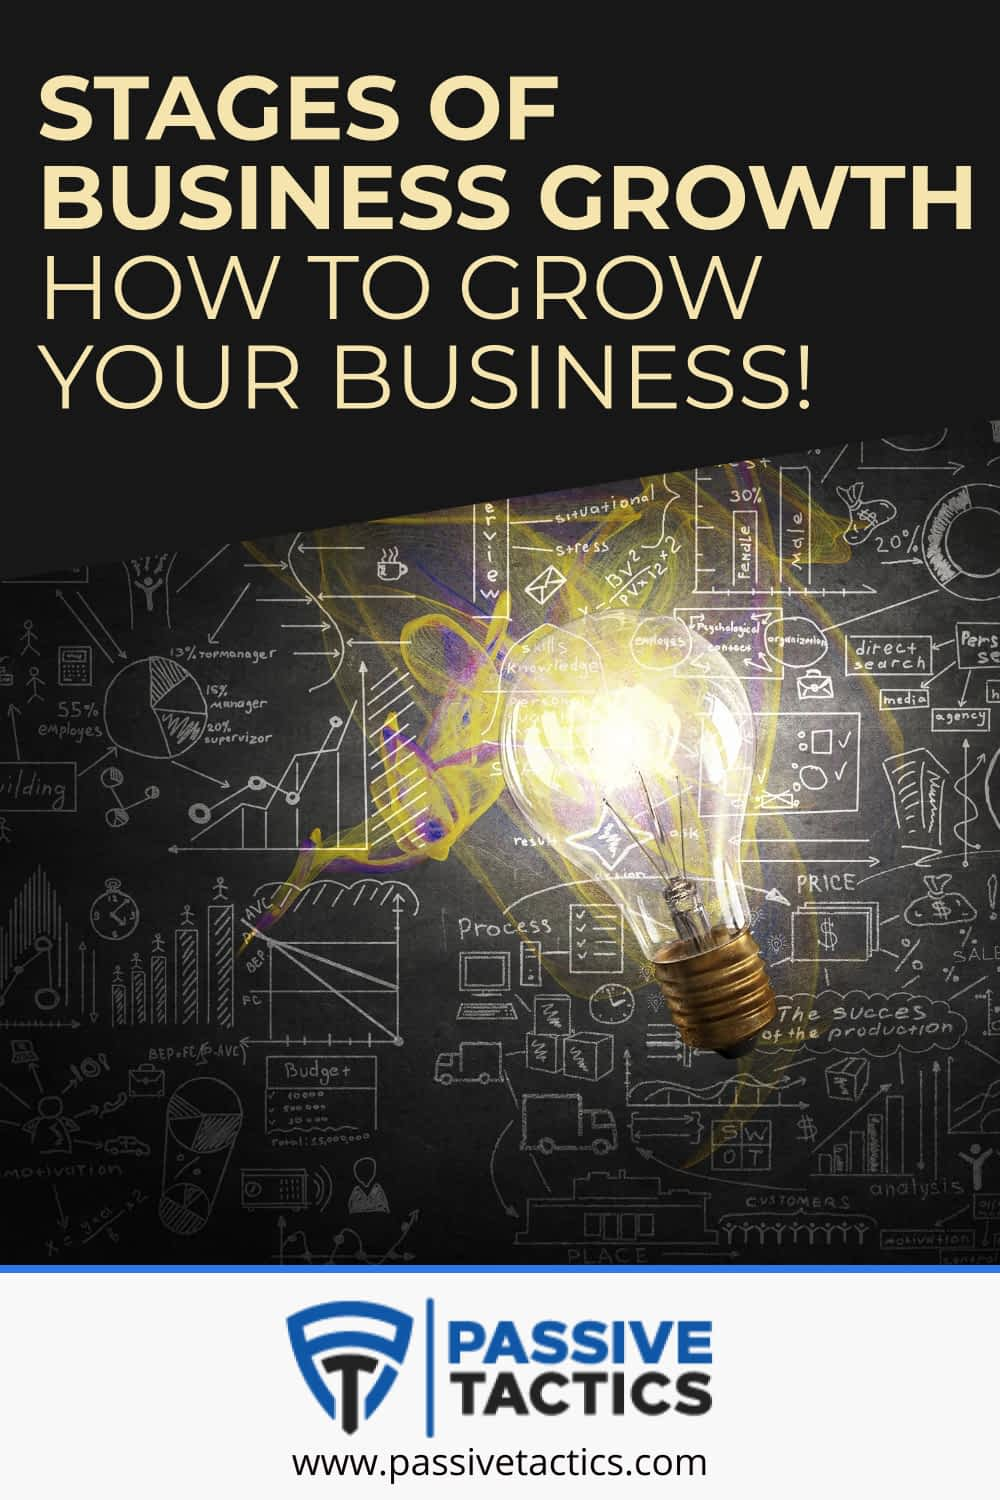 Stages of Business Growth: How To Grow Your Business!